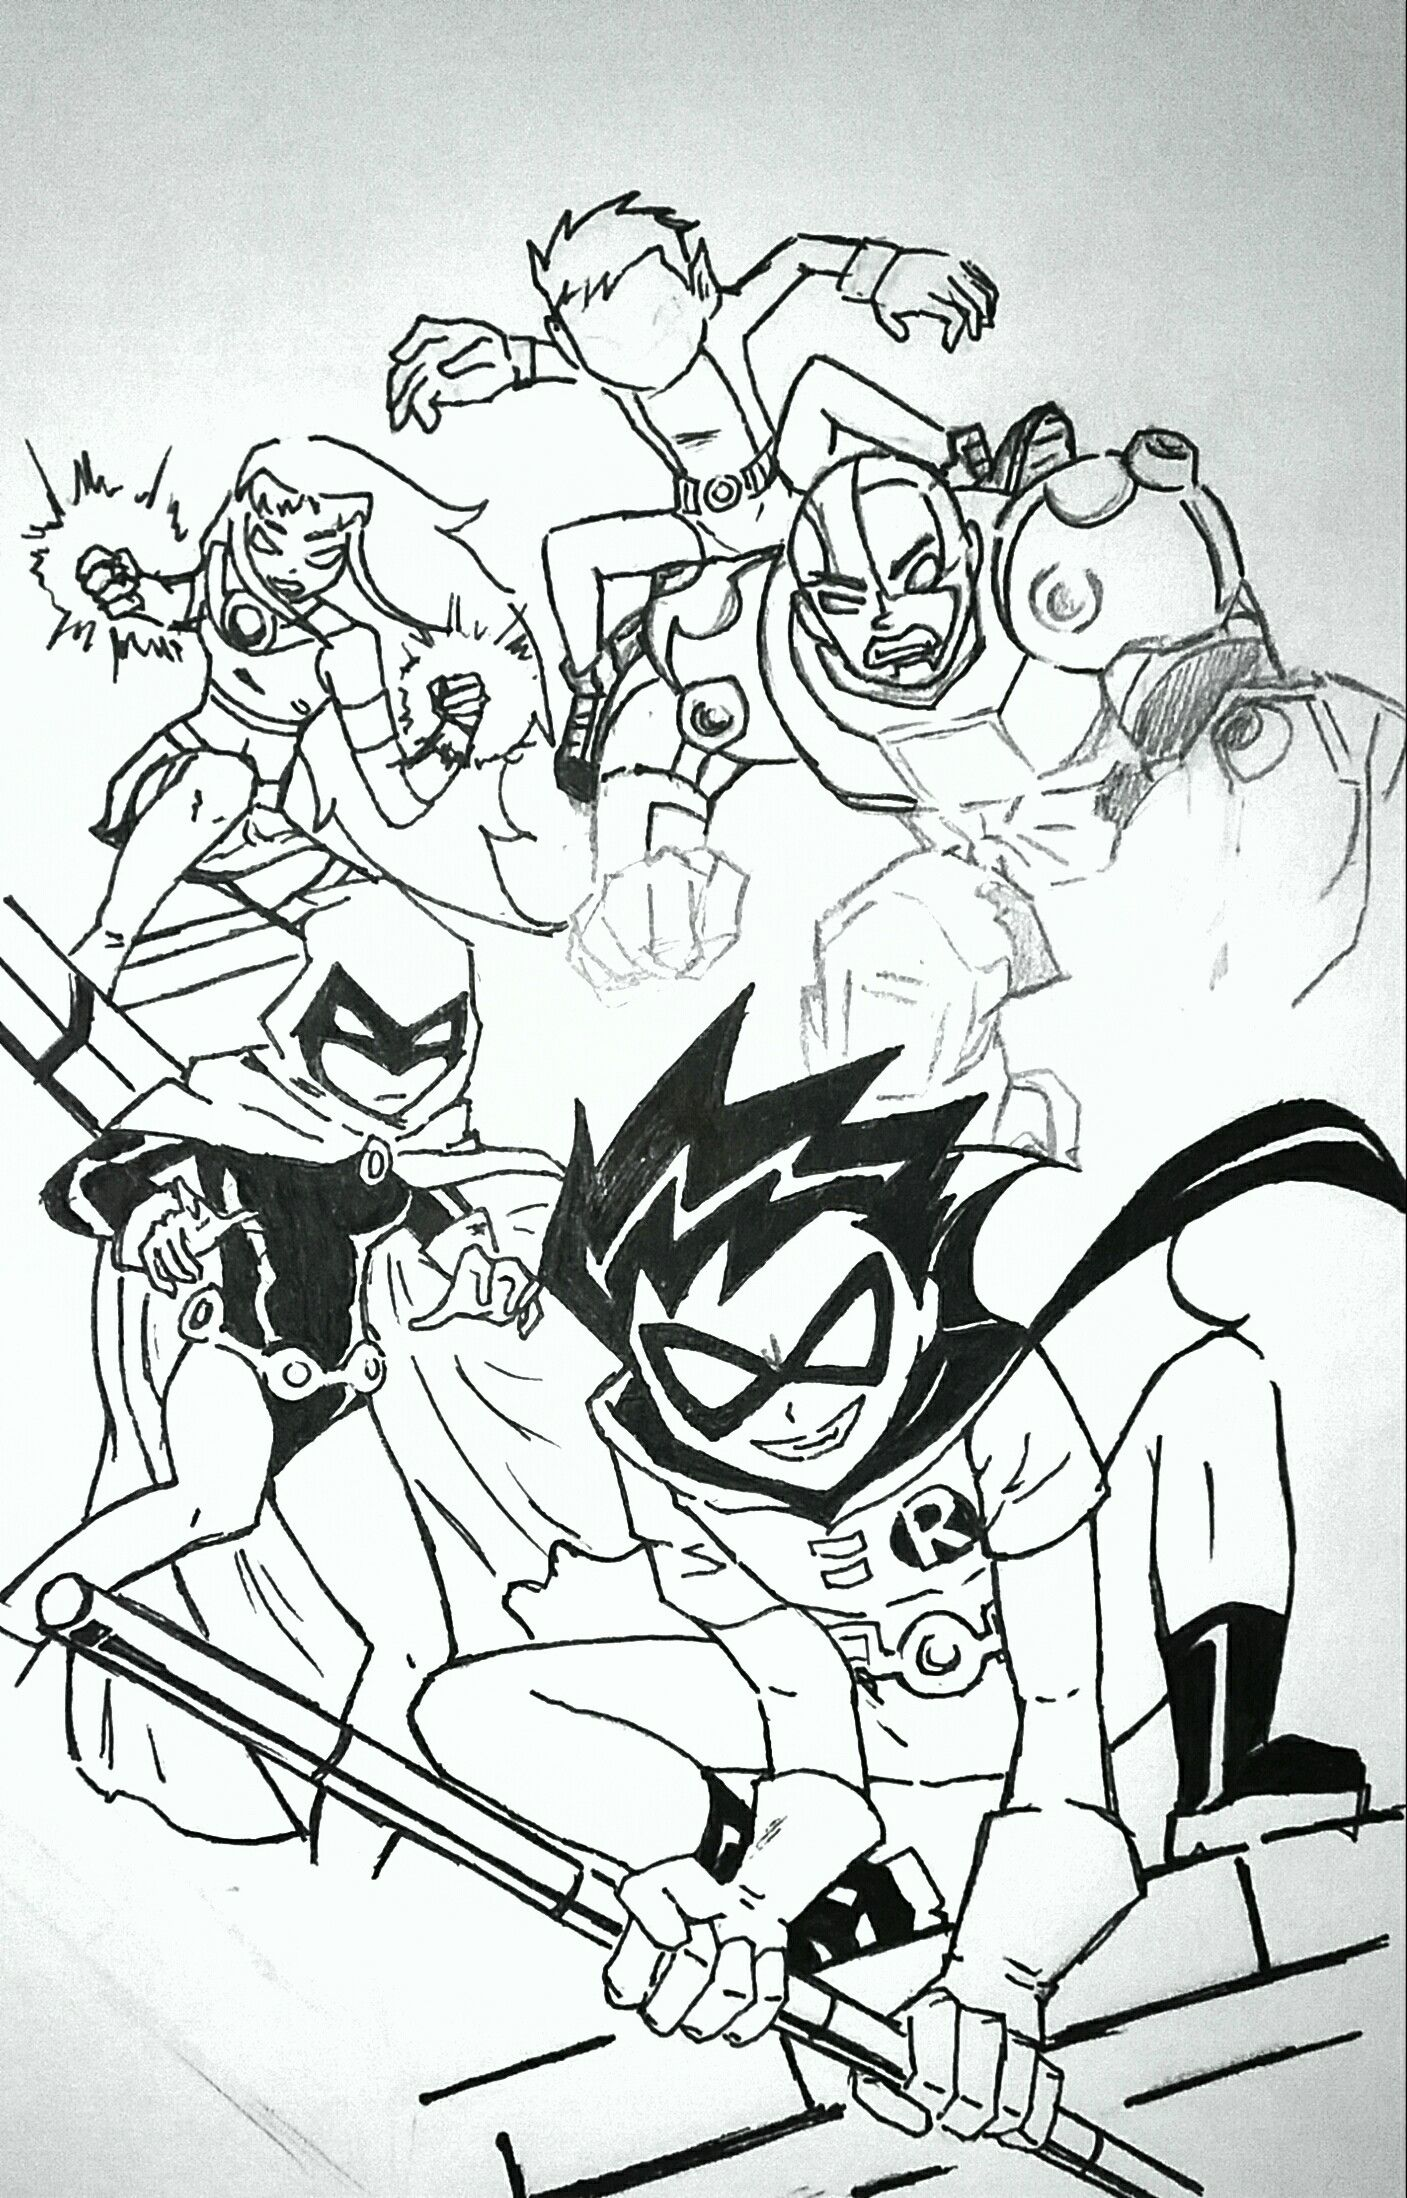 Okay so im not done. I just thought i post the draft because as you can see, its starting to look pretty sweet. As you may also be able to tell... I have an unhealthy obsession with the titans and now that i can draw them better, though this may be the last time i draw them together because it's so hard.  So not my pic just a redraw credits to original artist. I think it might be a comic cover but idk.